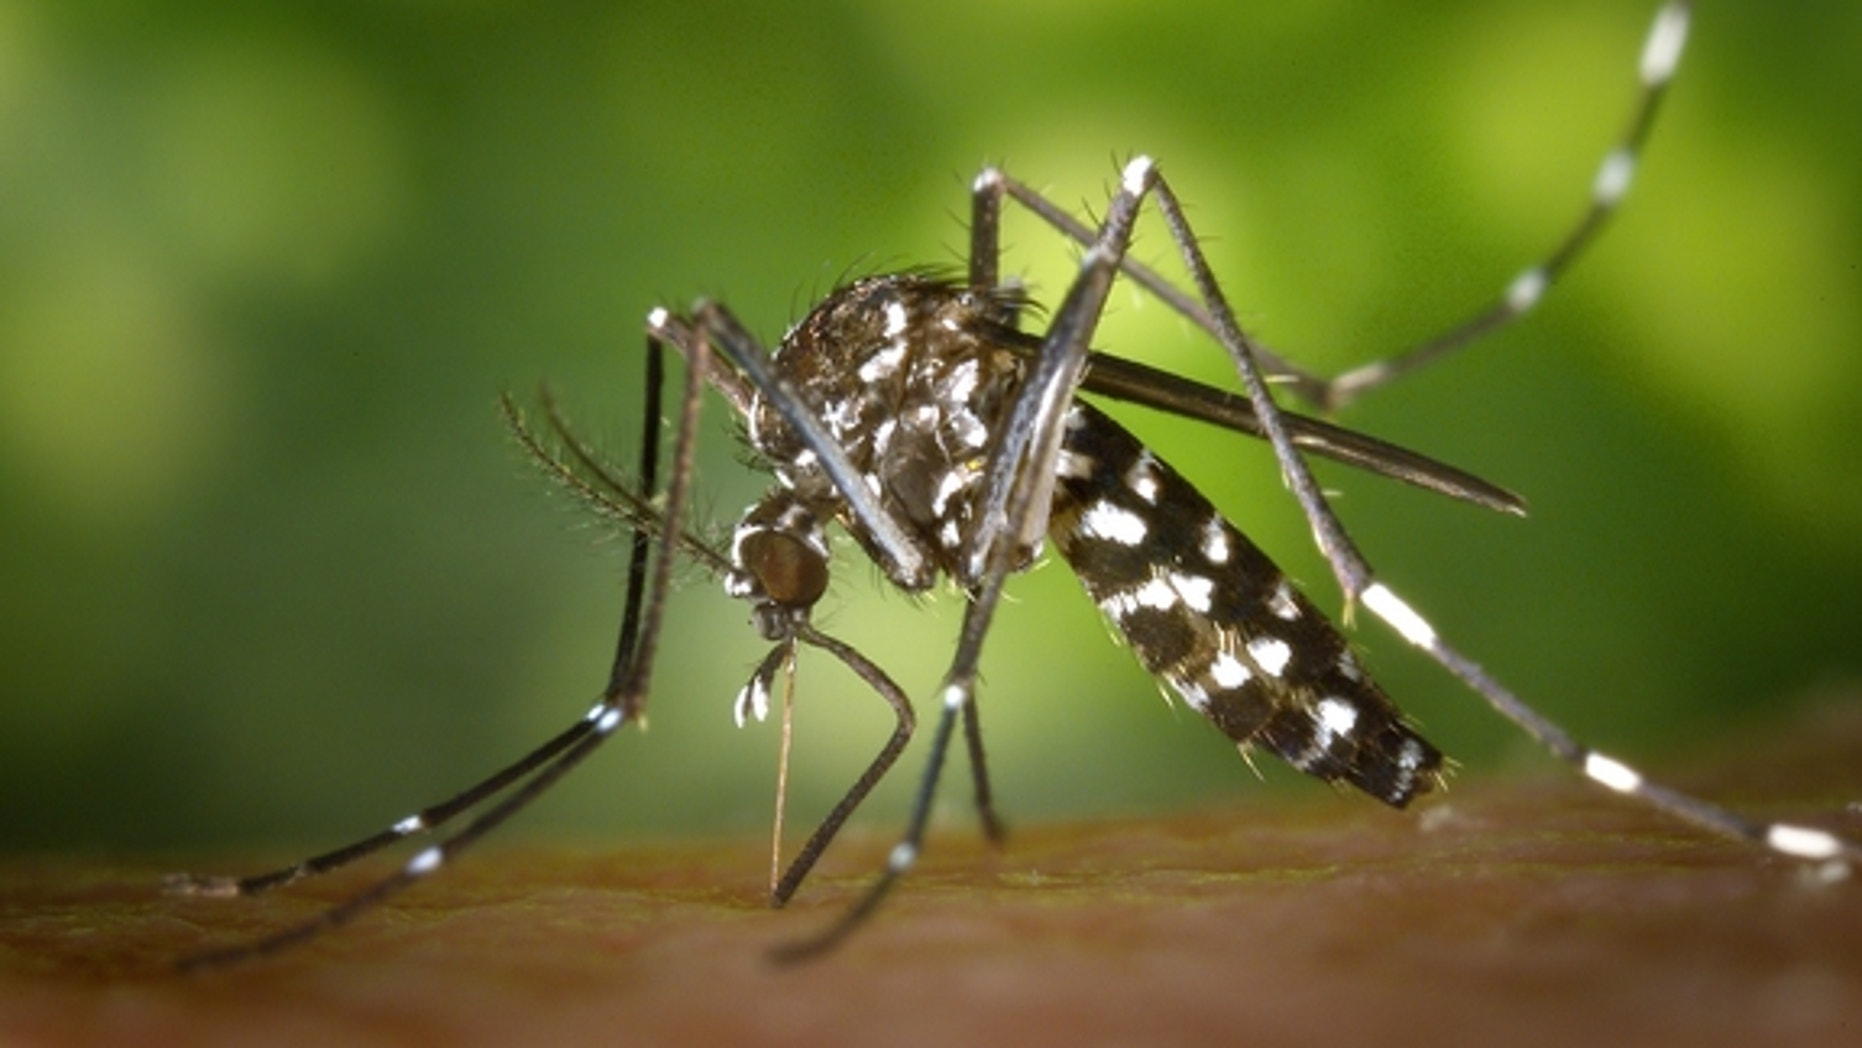 Asian tiger mosquito Aedes albopictus, one of the species that can carry the Zika virus, begins its blood meal.